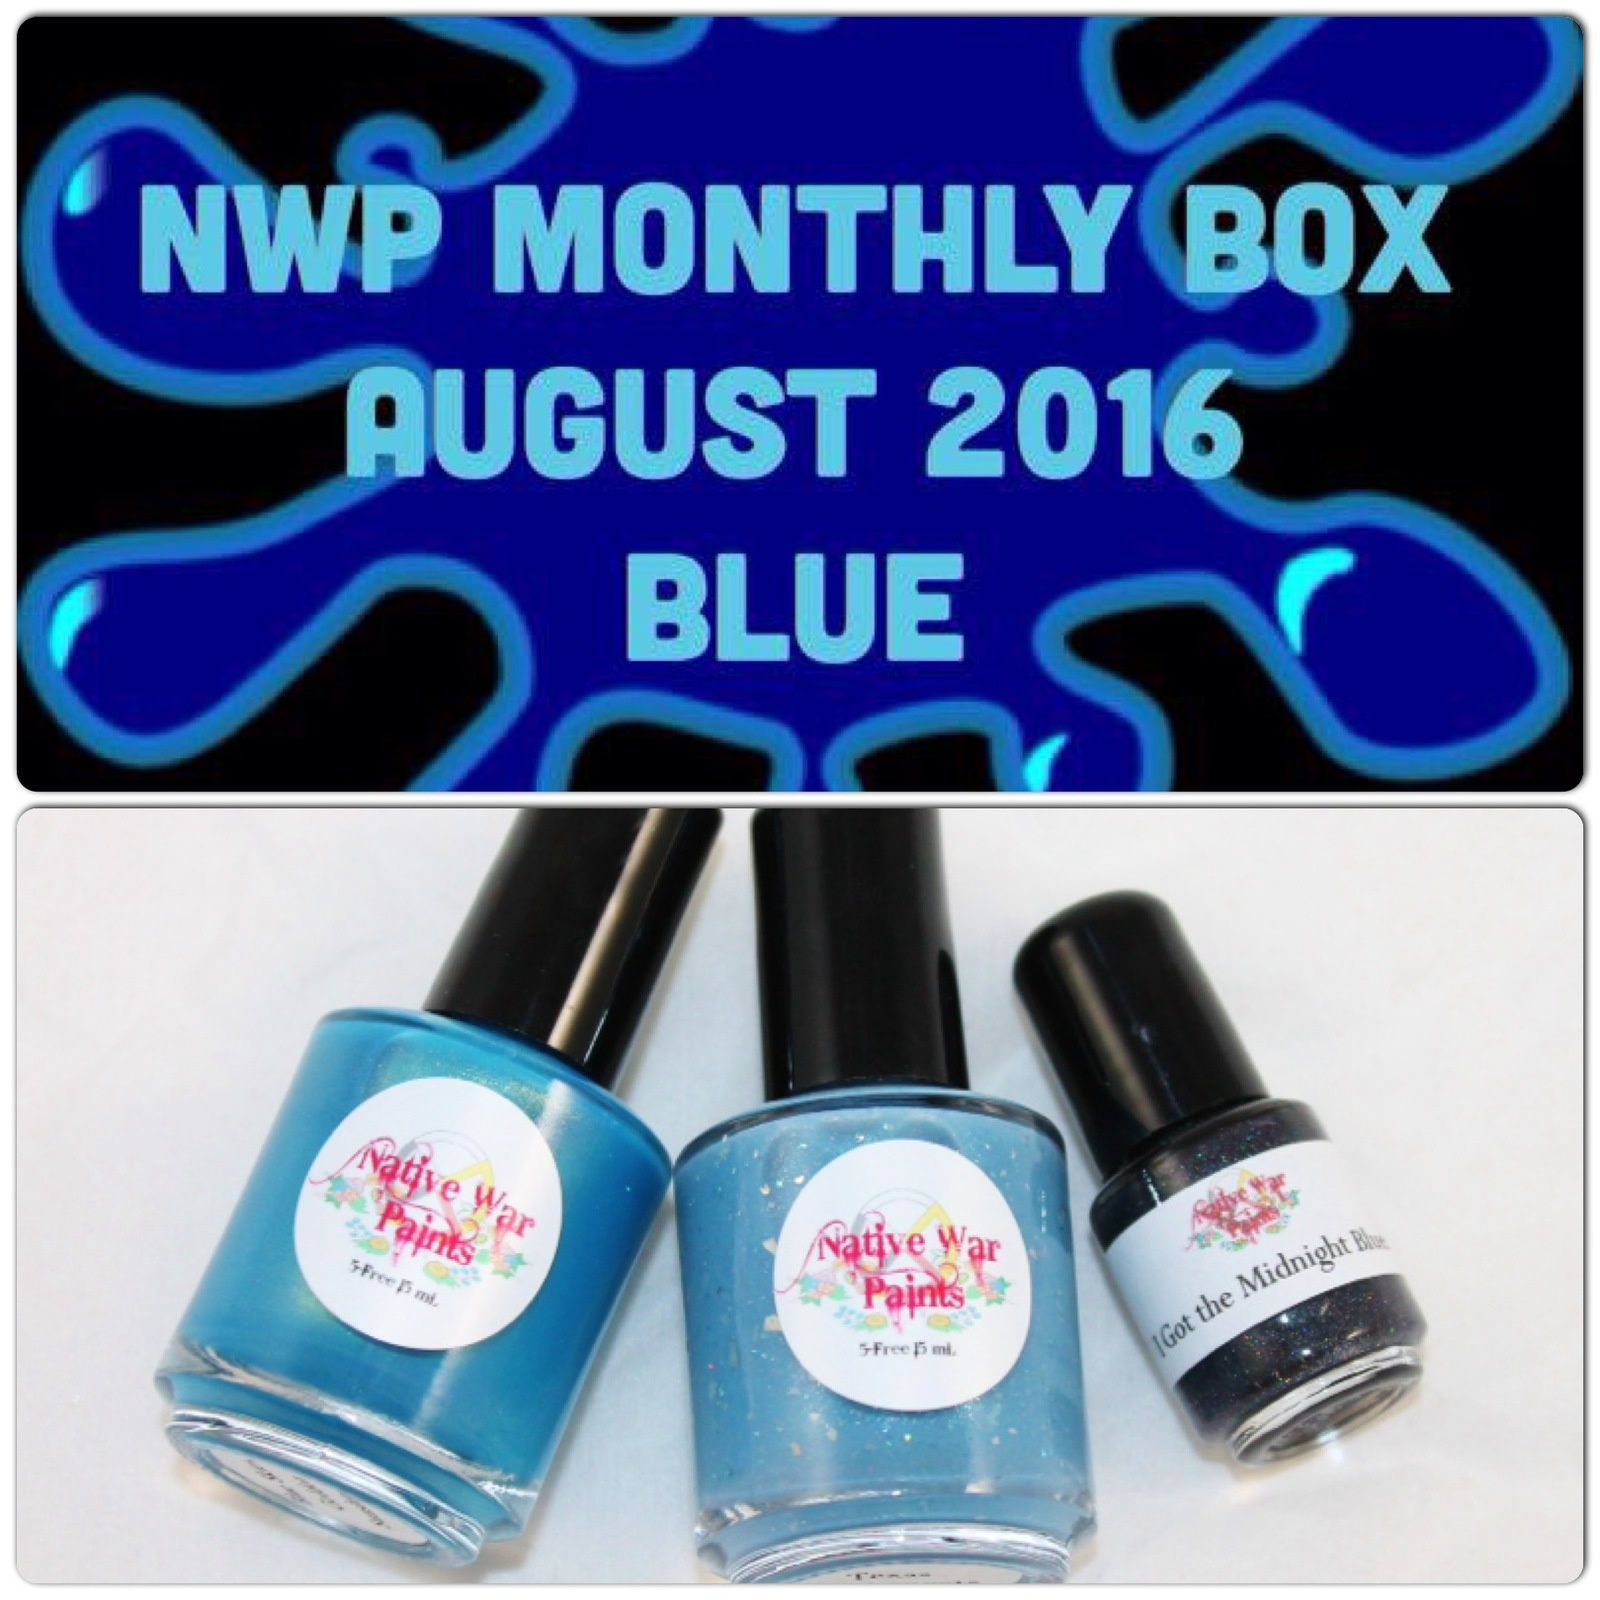 Native War Paints Monthly Box - August 2016 - Blue